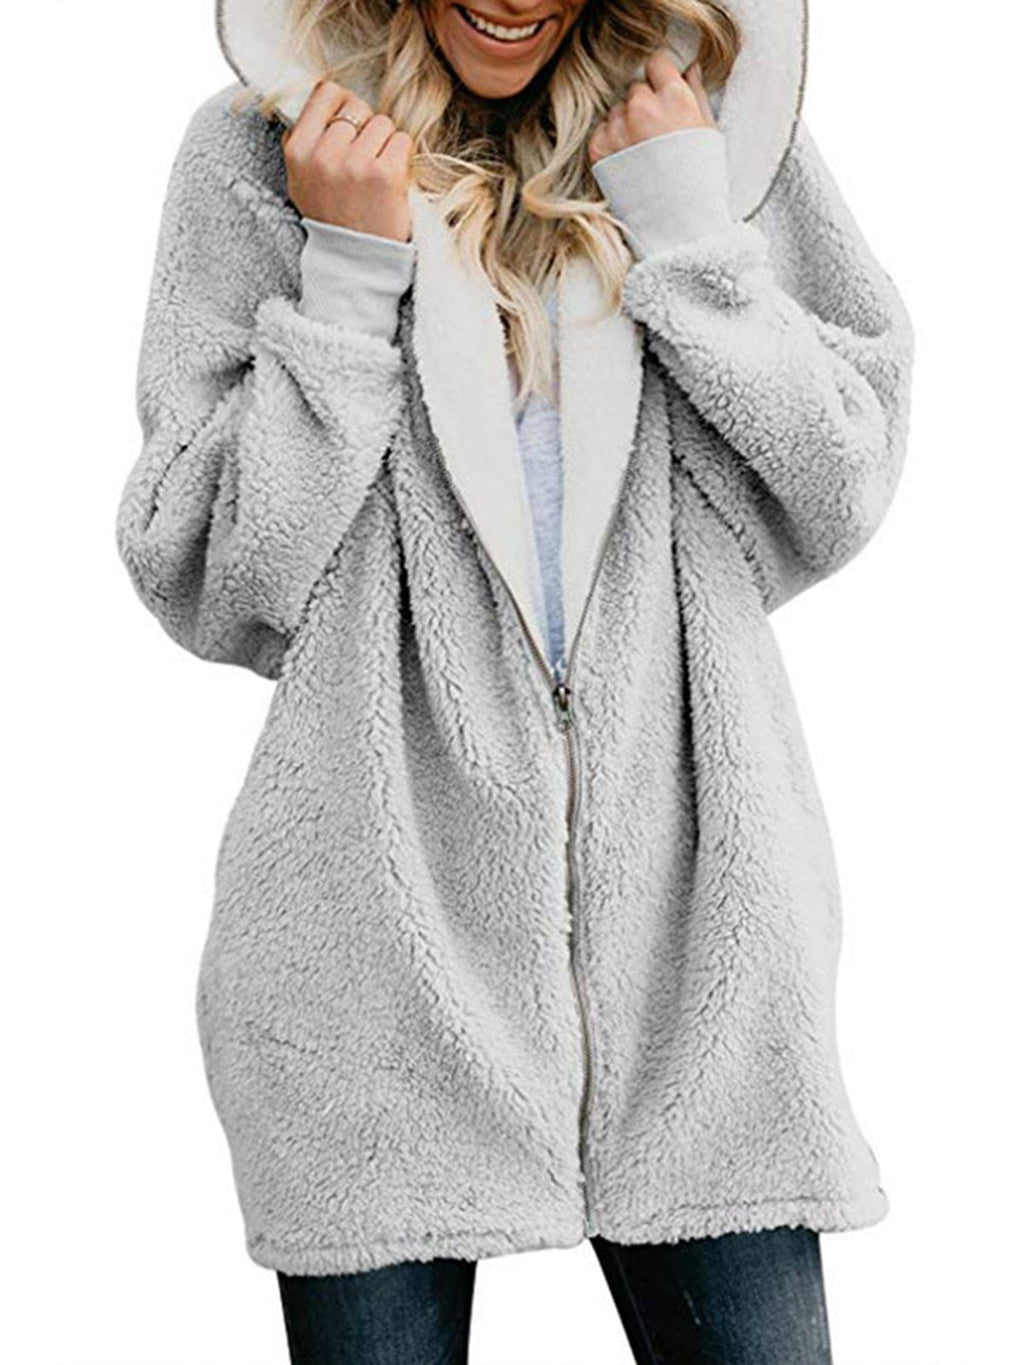 Zipper Cashmere Hooded Teddy Bear Coat